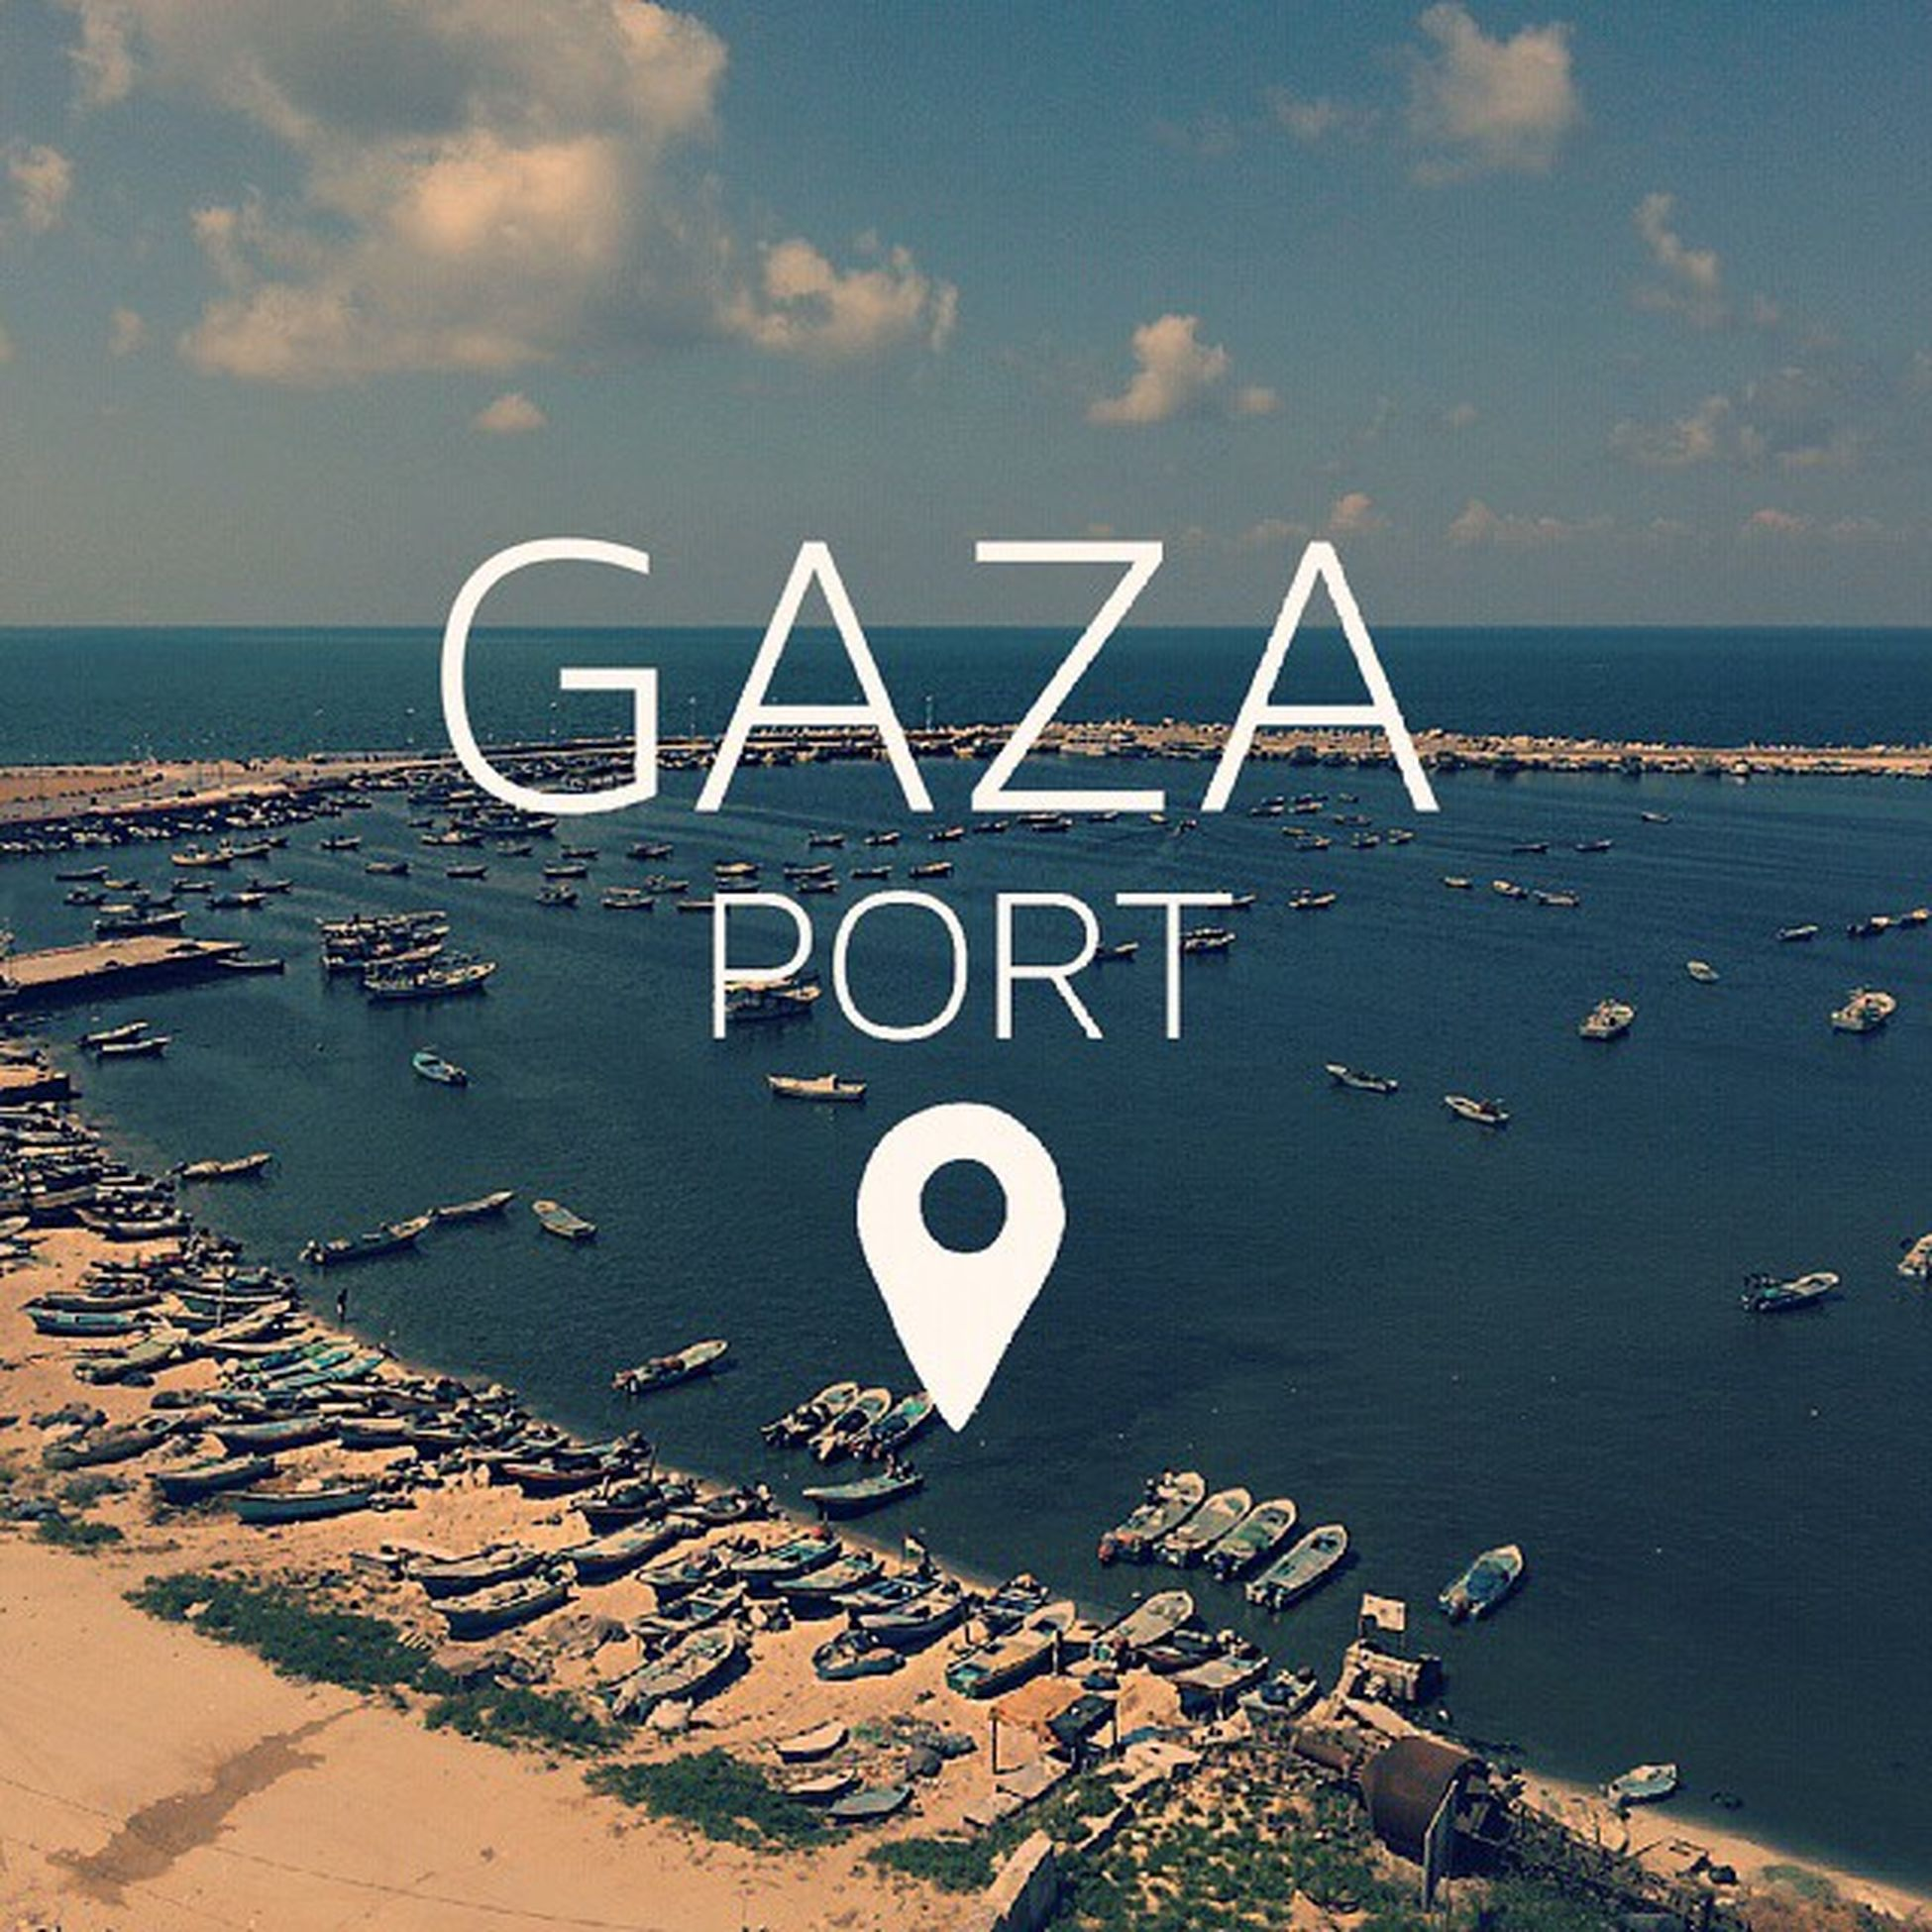 Gaza Port Gazaport Palestine Location Summer Sunny Morning Launch Adam Hotel Boats Sea Beach Clouds Font RJ